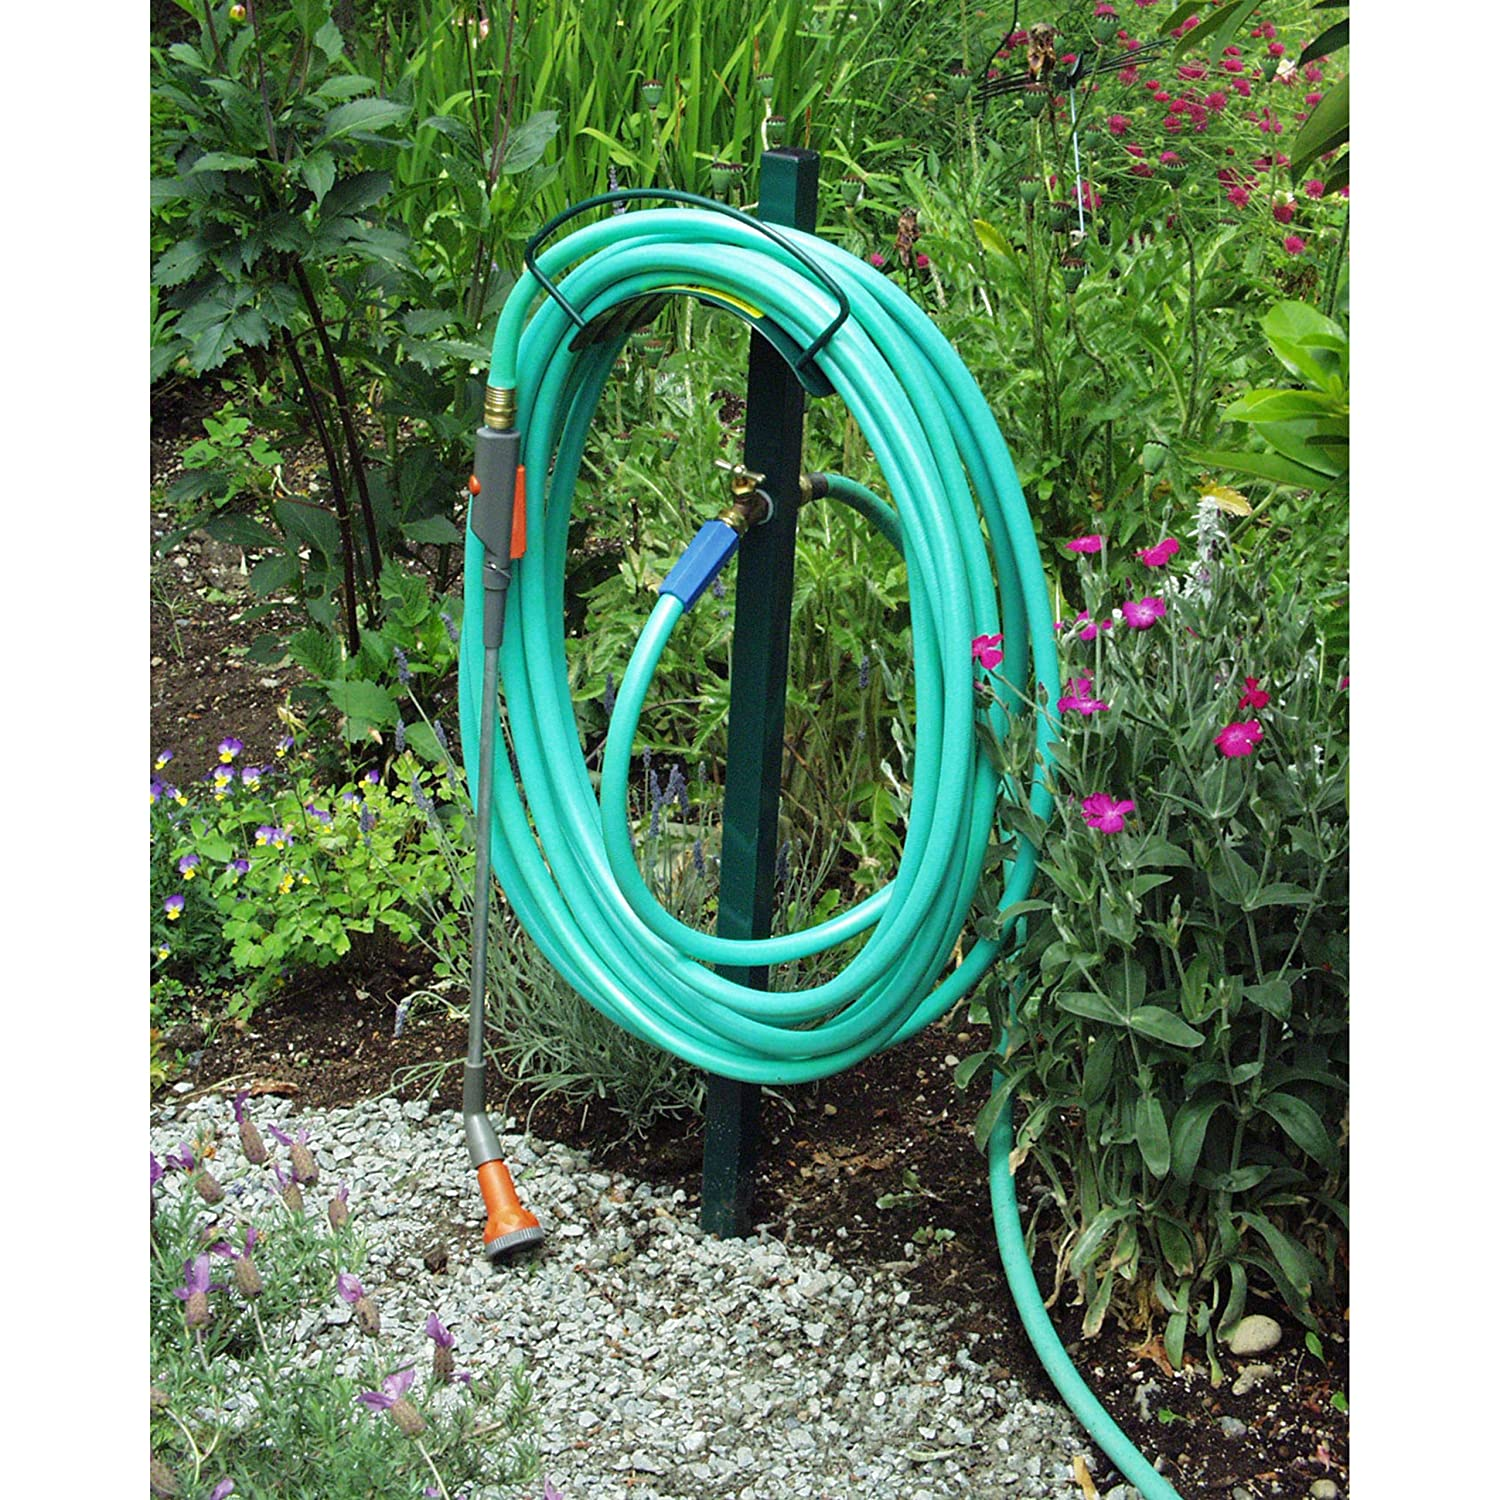 Amazon.com : Yard Butler Lewis Hose Hanger With Faucet 42inx13inx8in : Garden  Hose Parts : Garden U0026 Outdoor